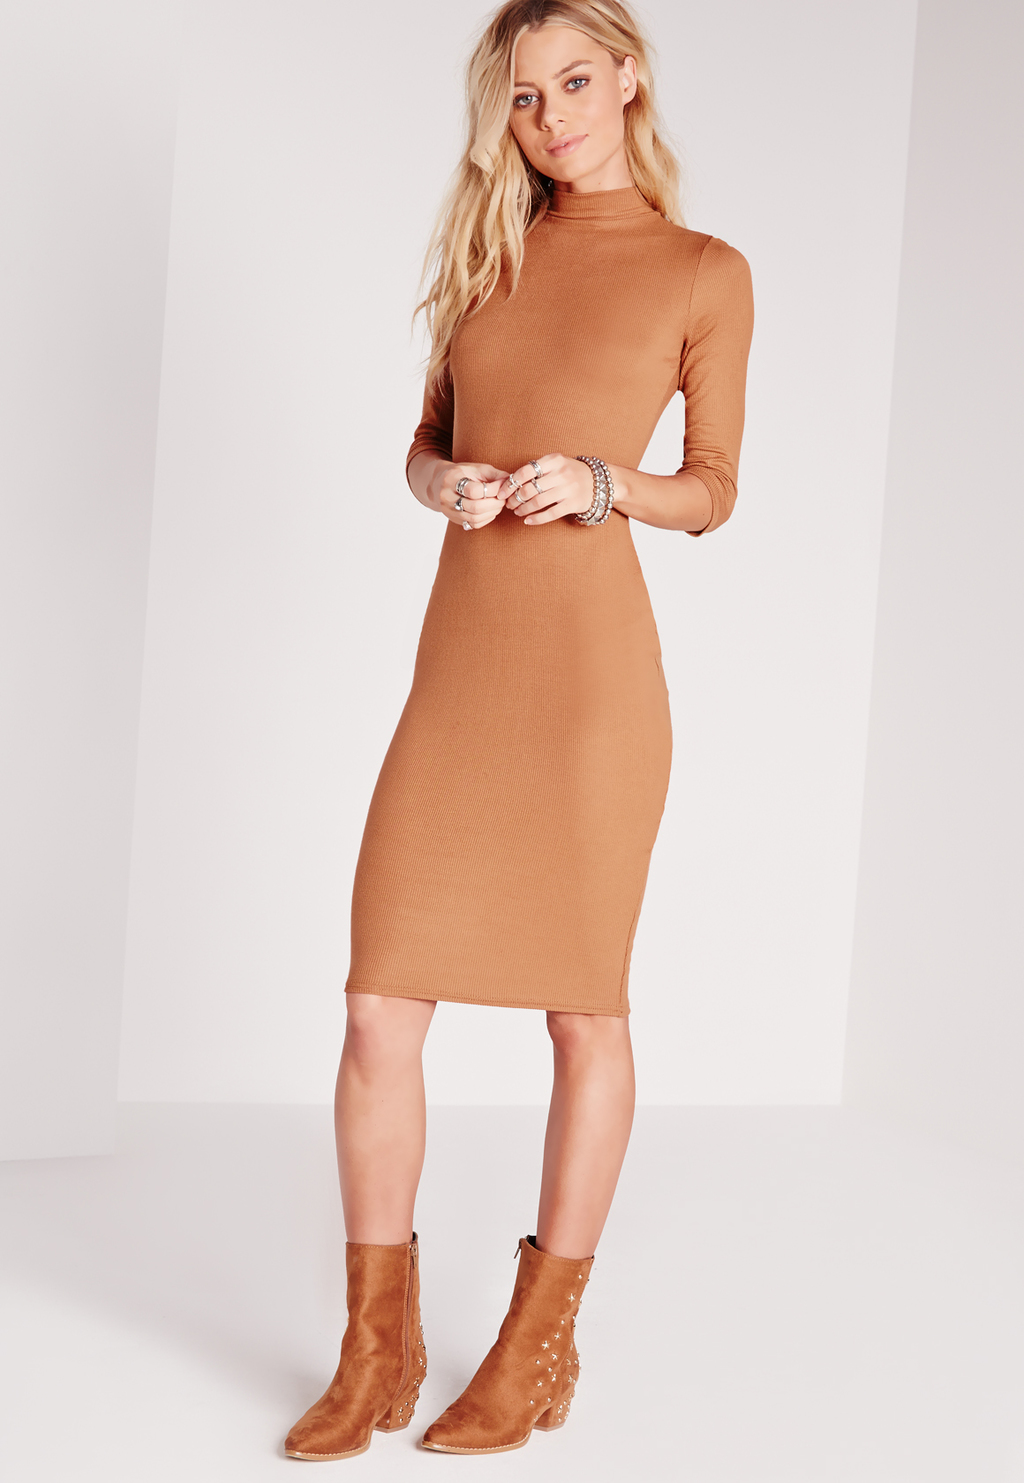 Ribbed Jersey Roll Neck Midi Dress Tan, Brown - fit: tight; pattern: plain; style: bodycon; neckline: roll neck; predominant colour: camel; occasions: casual; length: on the knee; fibres: viscose/rayon - stretch; sleeve length: long sleeve; sleeve style: standard; texture group: jersey - clingy; pattern type: fabric; season: s/s 2016; wardrobe: basic